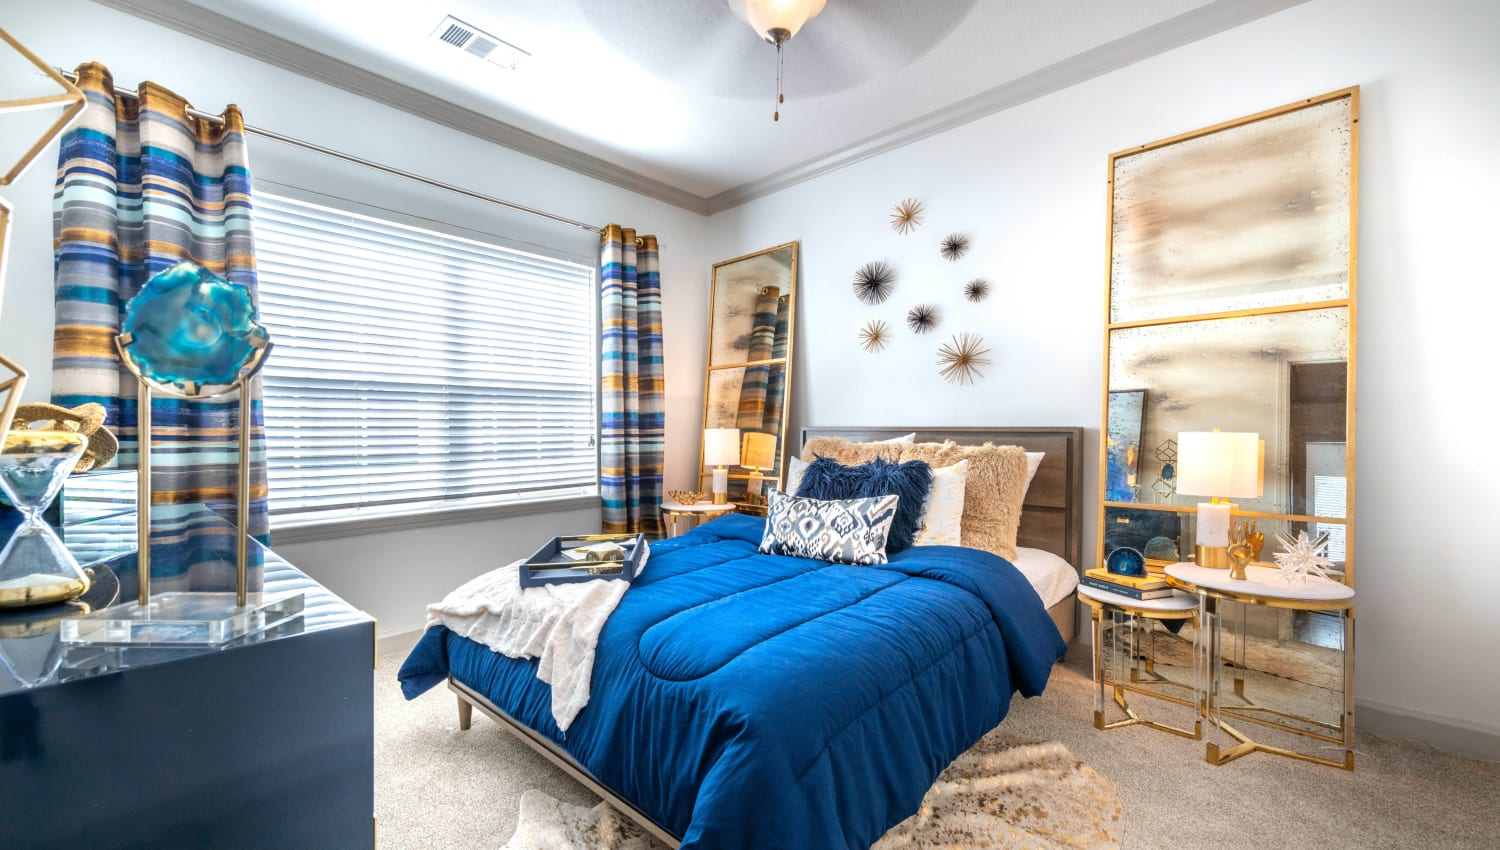 Model apartment's well-furnished child's bedroom at Olympus Carrington in Pooler, Georgia